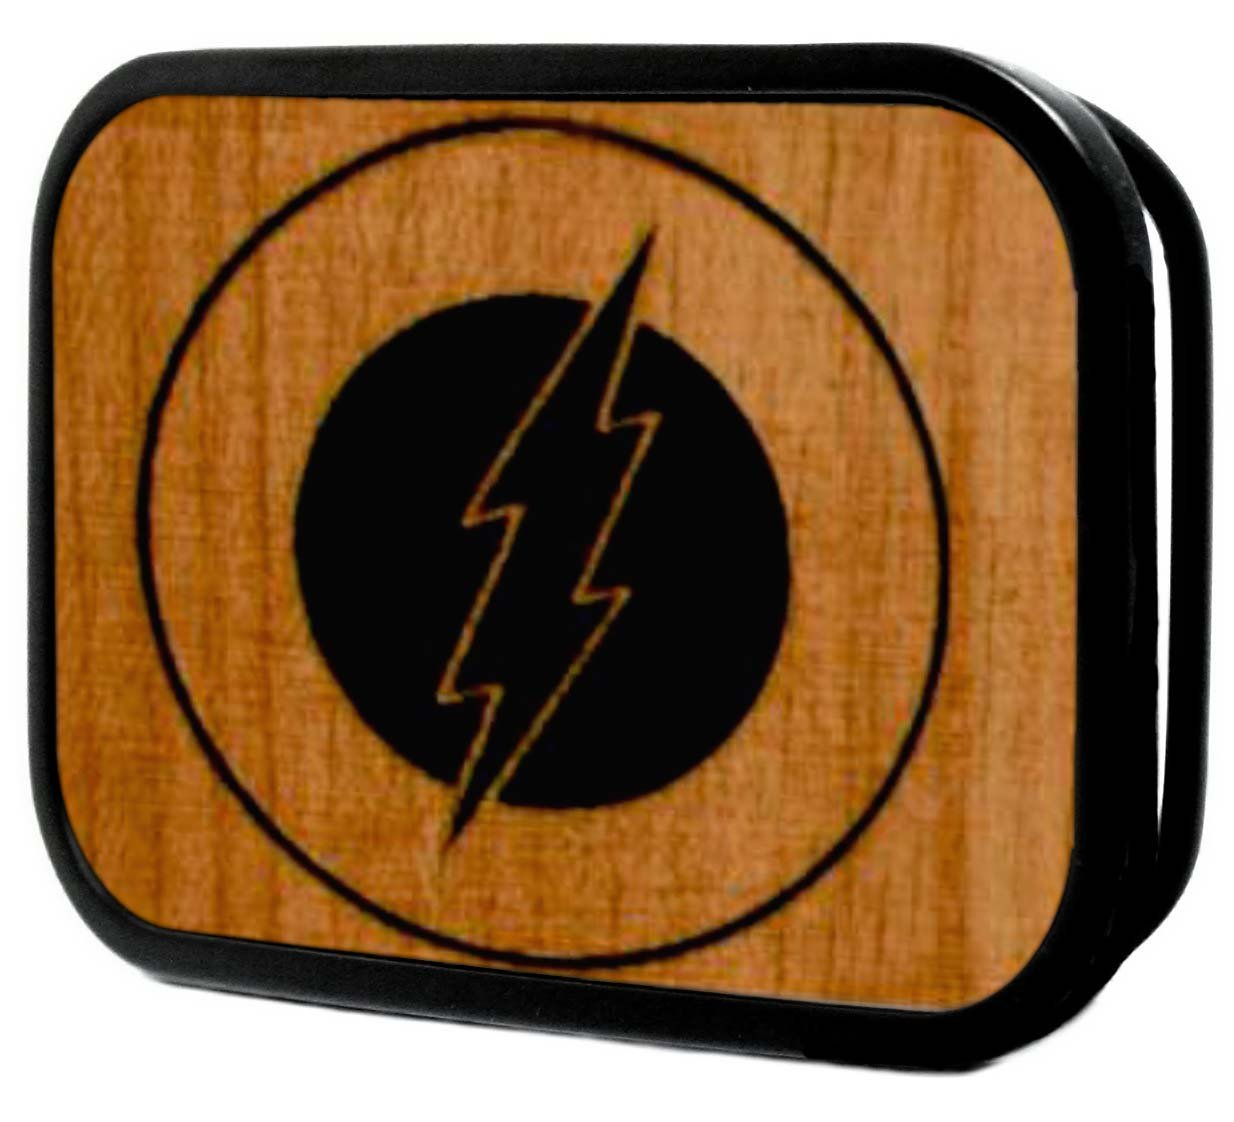 Flash DC Comics Superhero Wooden Emblem Logo Rockstar Belt Buckle Buckle Down